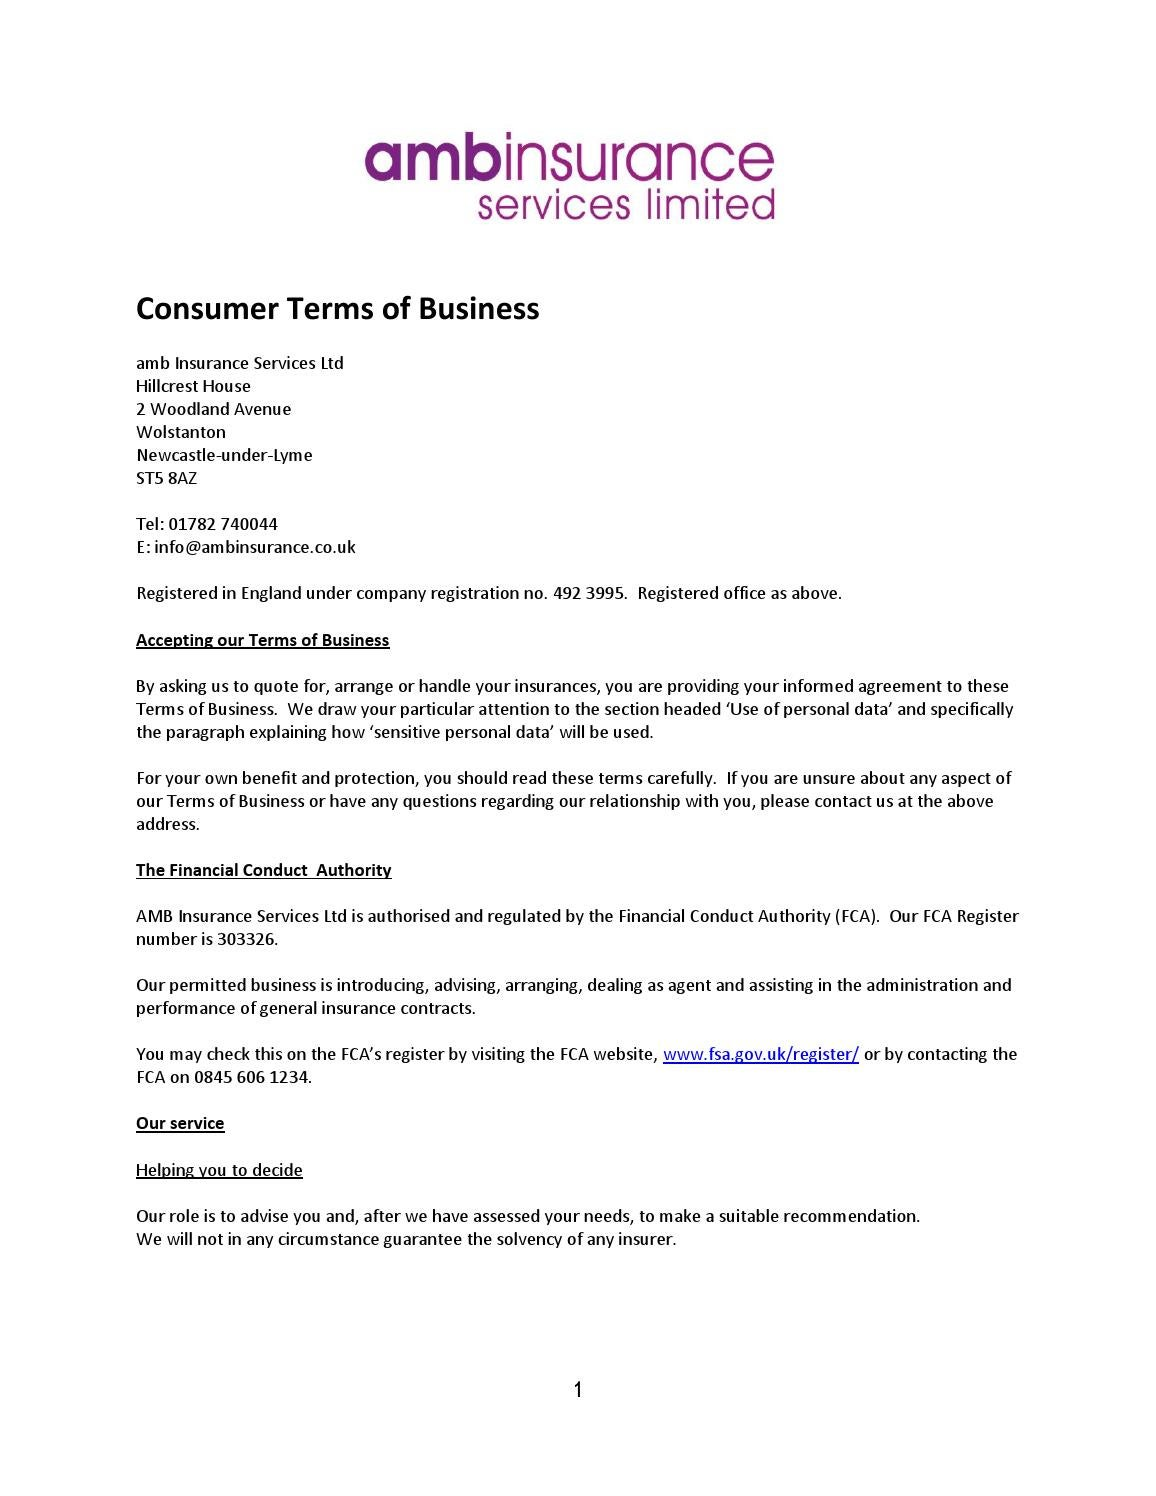 Consumer Terms Of Business V2 Fca 2014 By Amb Insurance Issuu